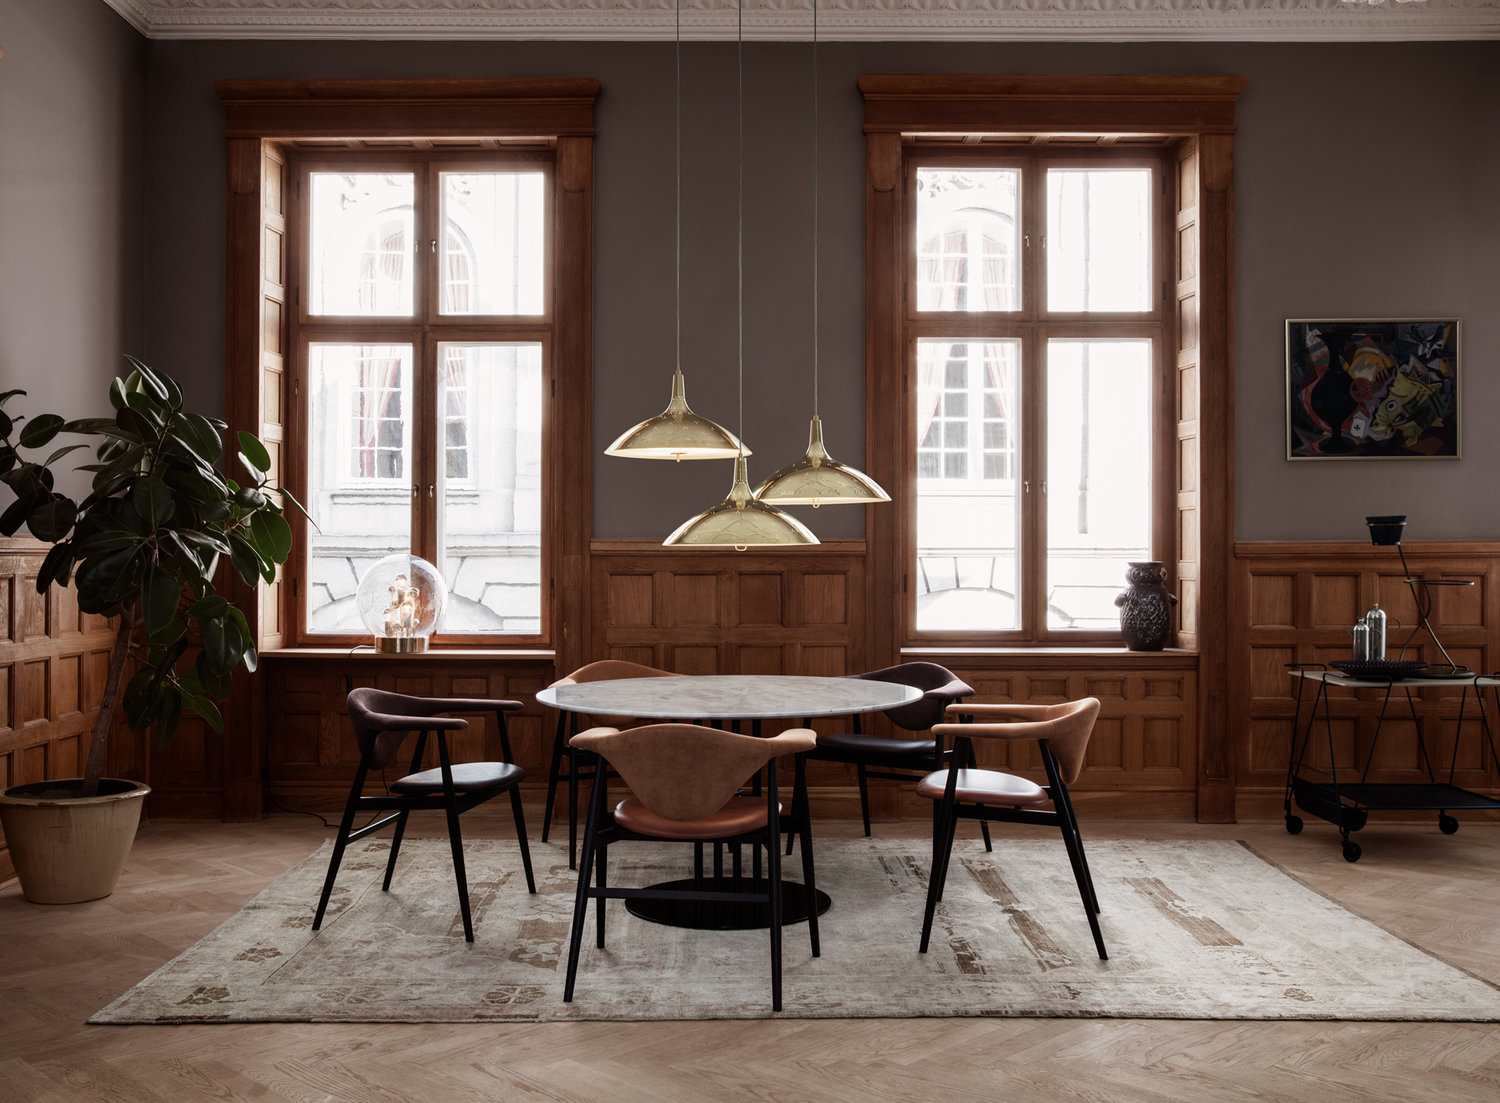 Interior Design Trends Top Tips From The Experts